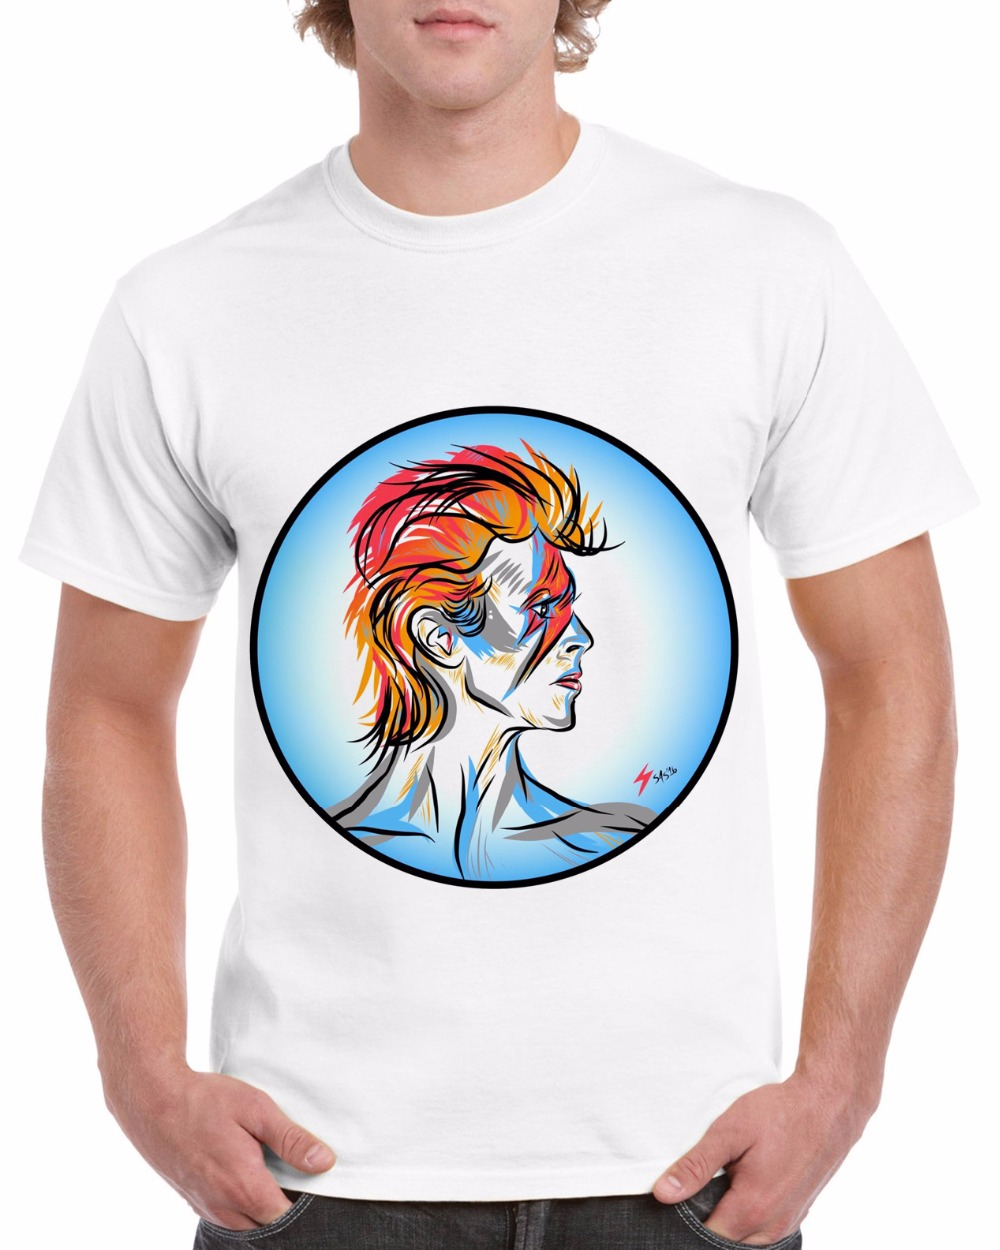 2018 Fashion David Bowie T Shirt for Men Anniversary Merchandise Shirt Short Sleeve Rock ...